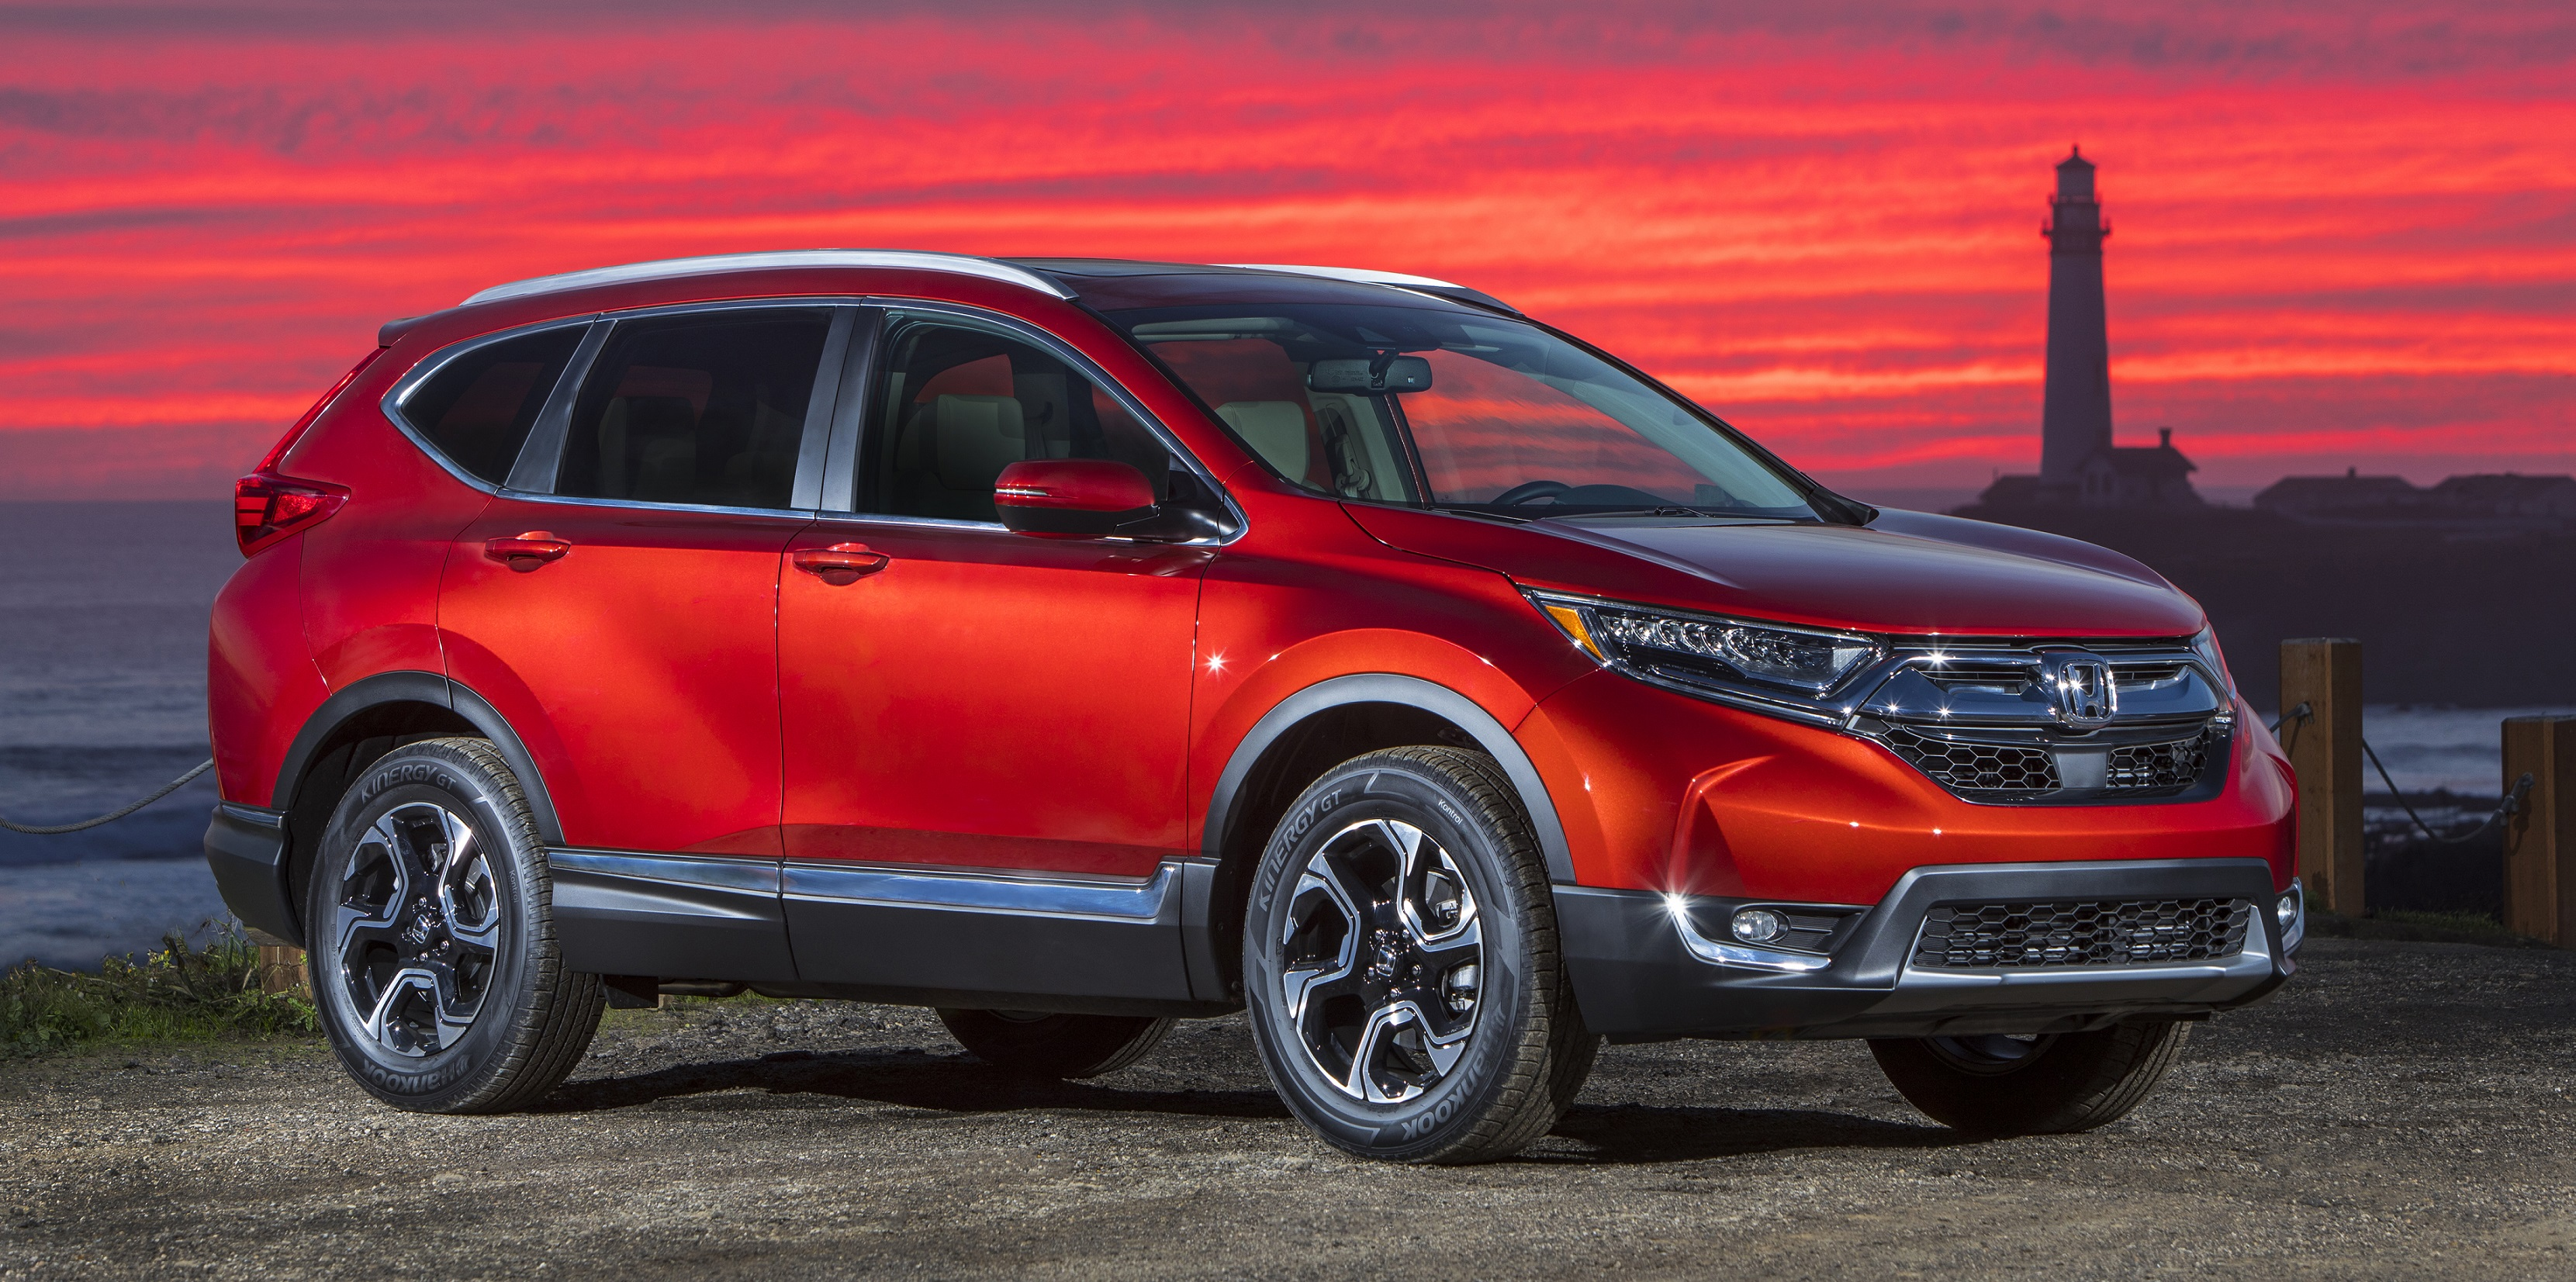 The Honda CR V Was Named Most Wanted In Compact SUV Segment